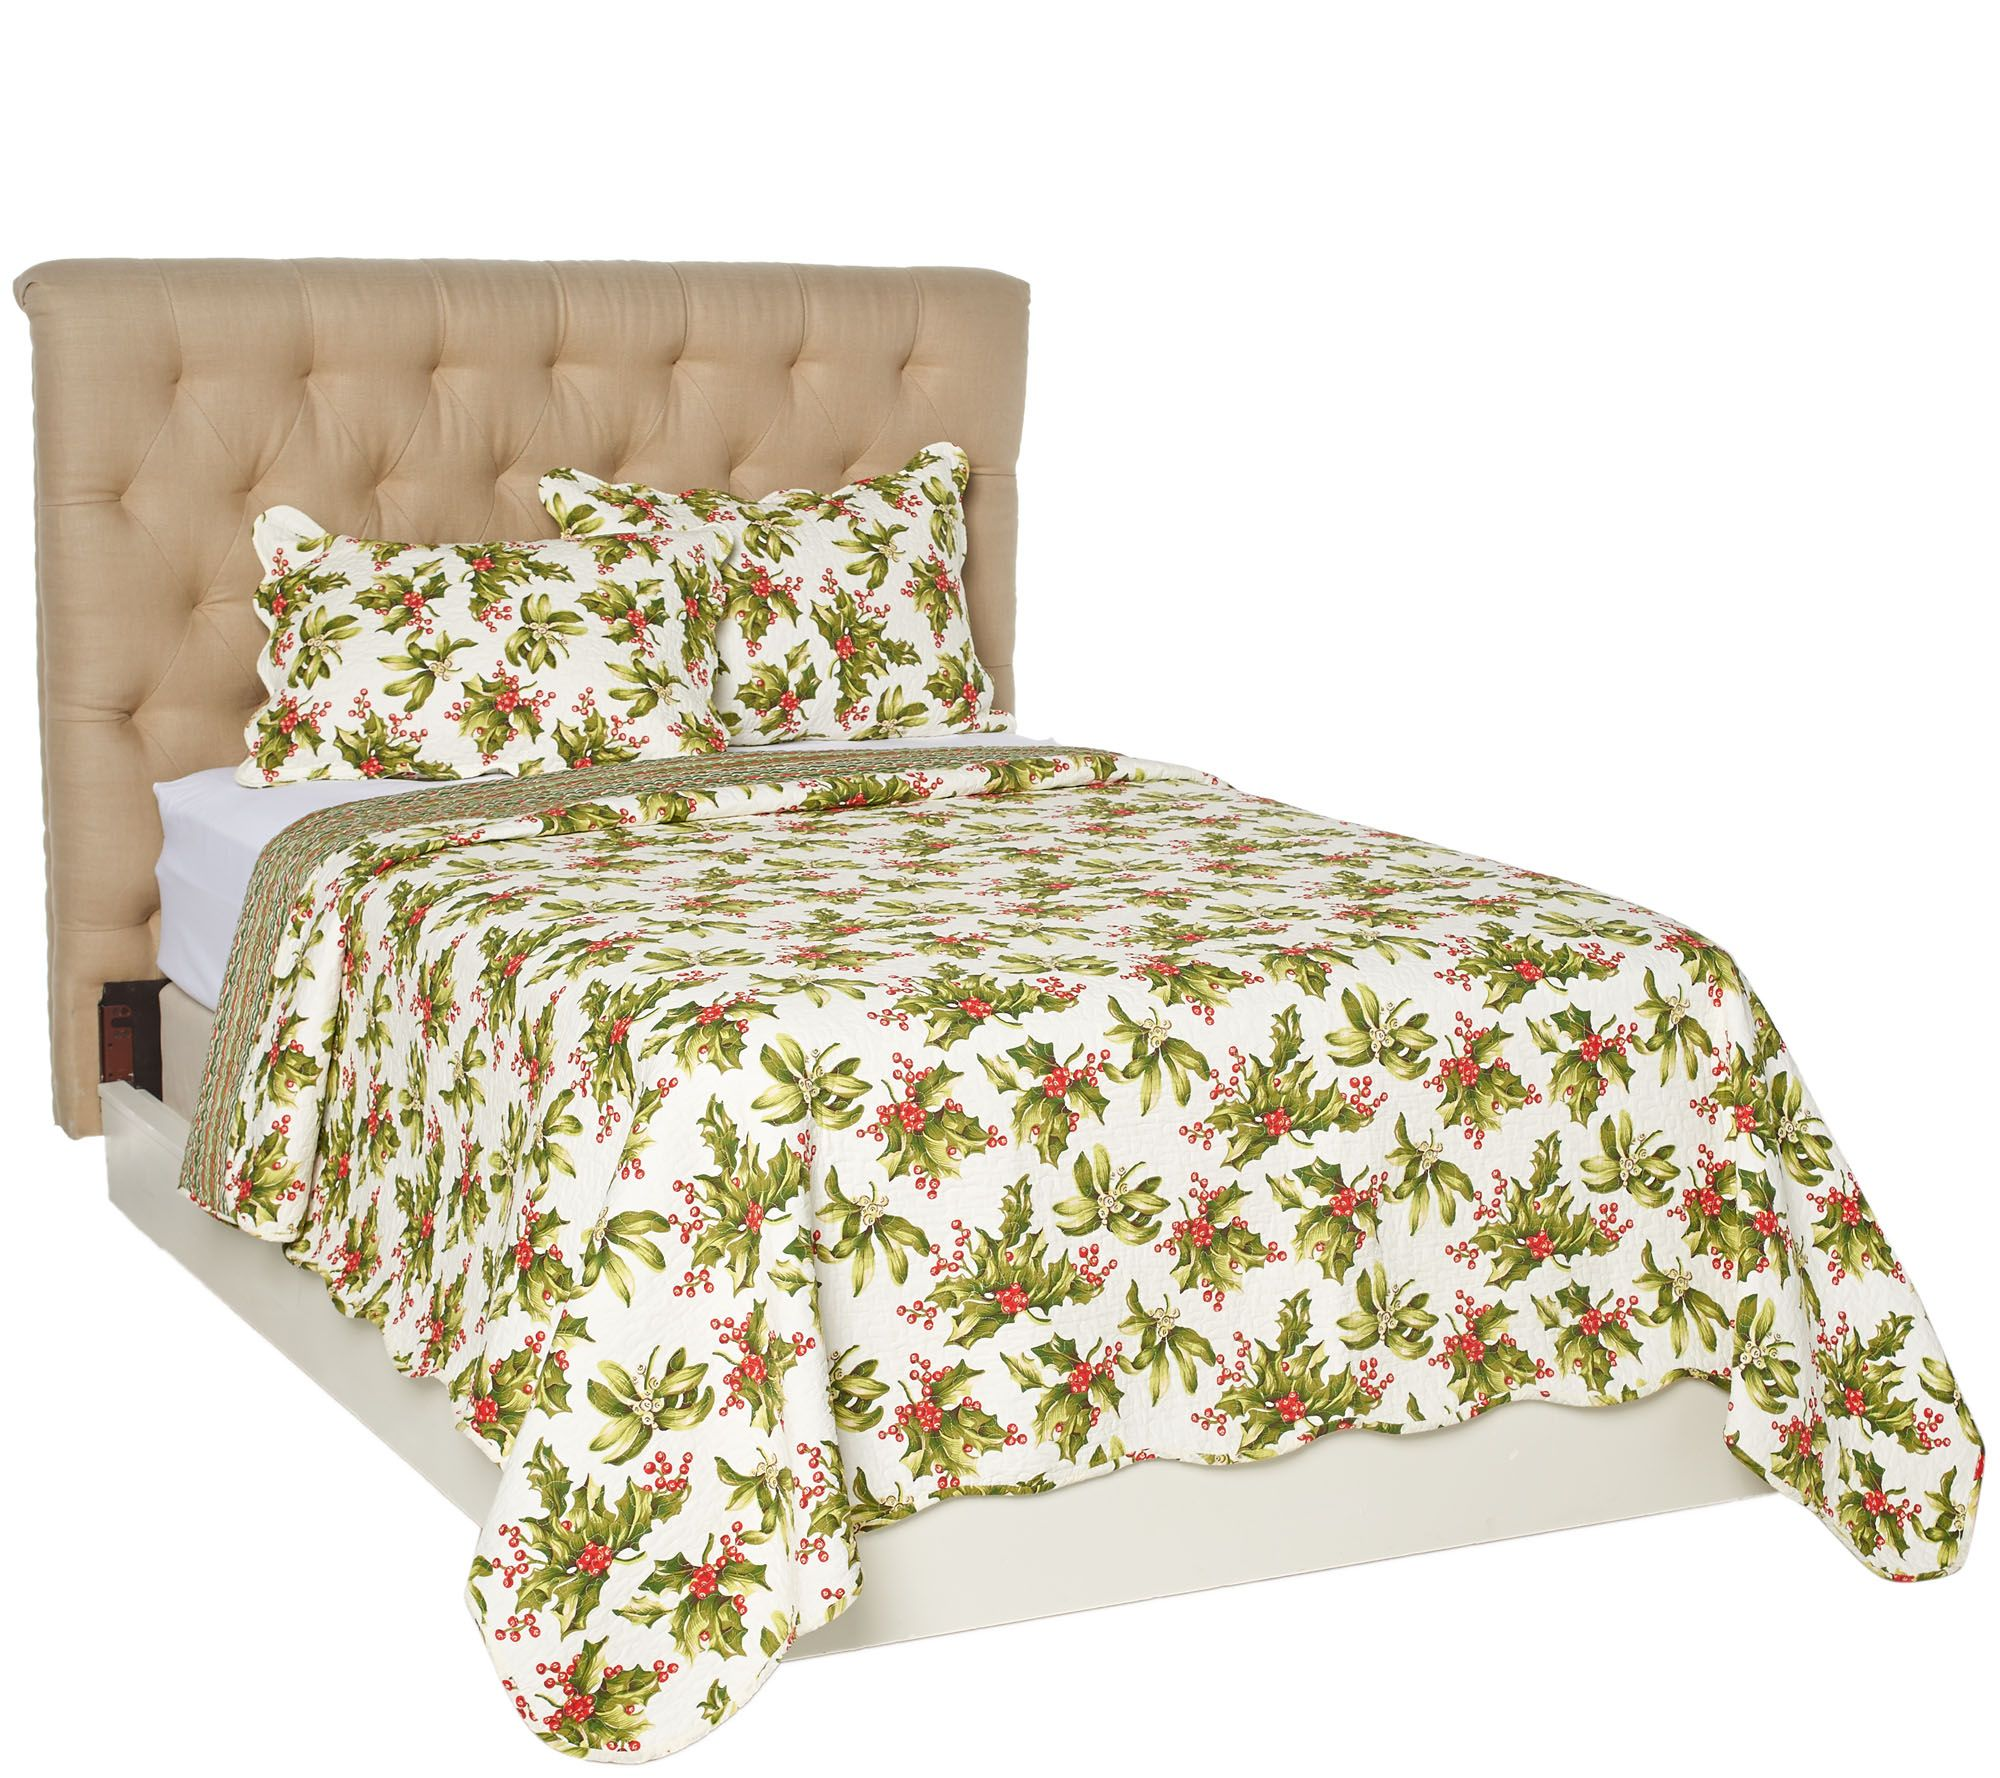 perugia oversized comforter com ip king printed piece reversible walmart set large extra overfilled